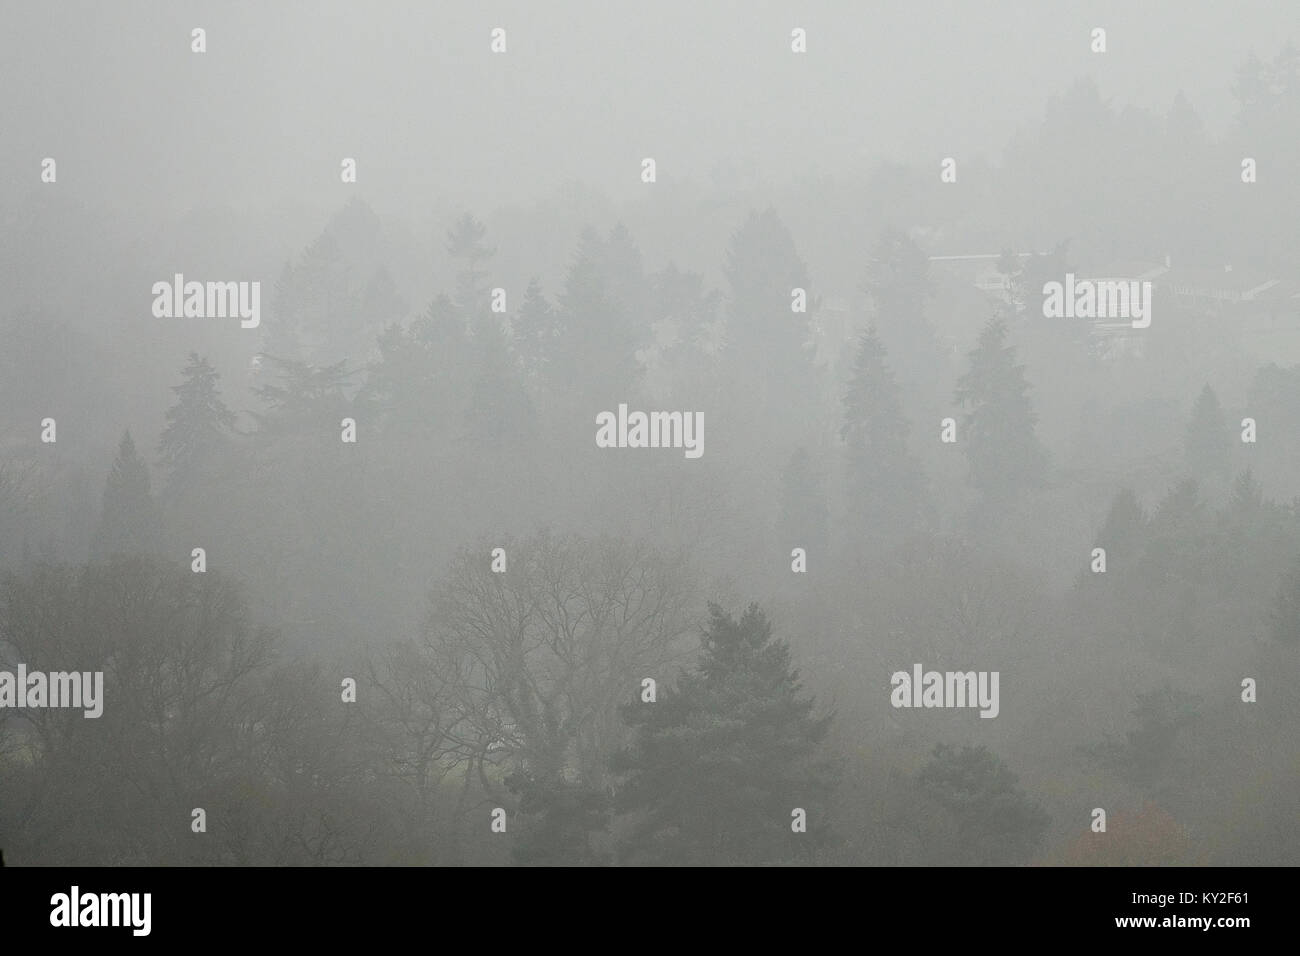 Crooksbury Hill, Farnham. 12th January 2018. Calm and misty conditions over the Home Counties this morning prior - Stock Image